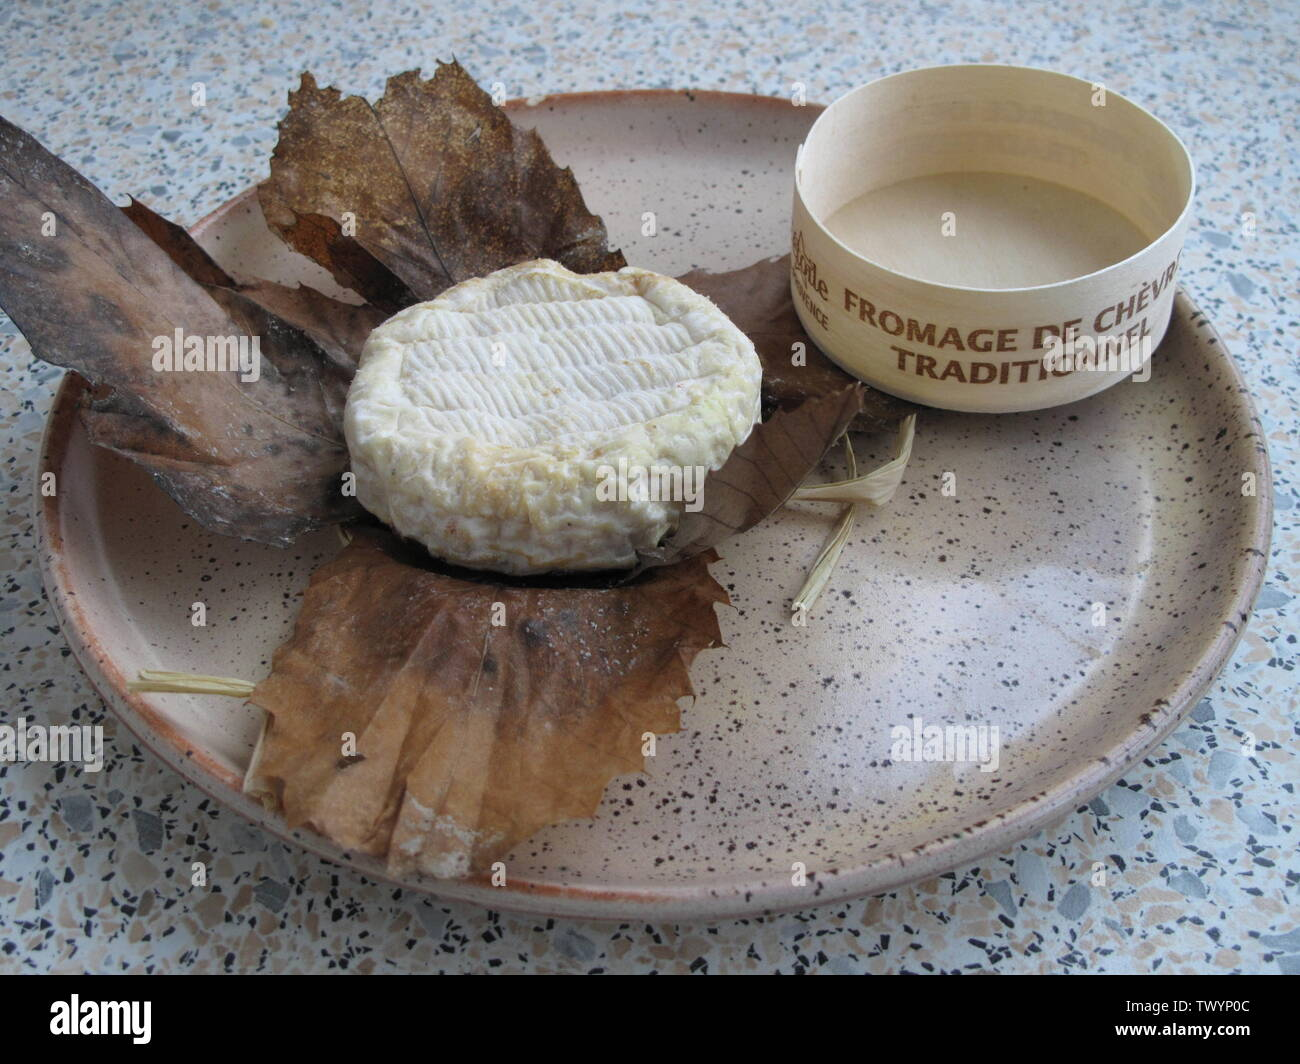 'English: French goat's cheese Banon, and its traditionnel enveloppe of leaves of chestnut tree Français: Fromage de chèvre Banon, dans son enveloppe traditionnelle de feuilles de châtaignier; 10 January 2010; Own work; Tangopaso; ' - Stock Image